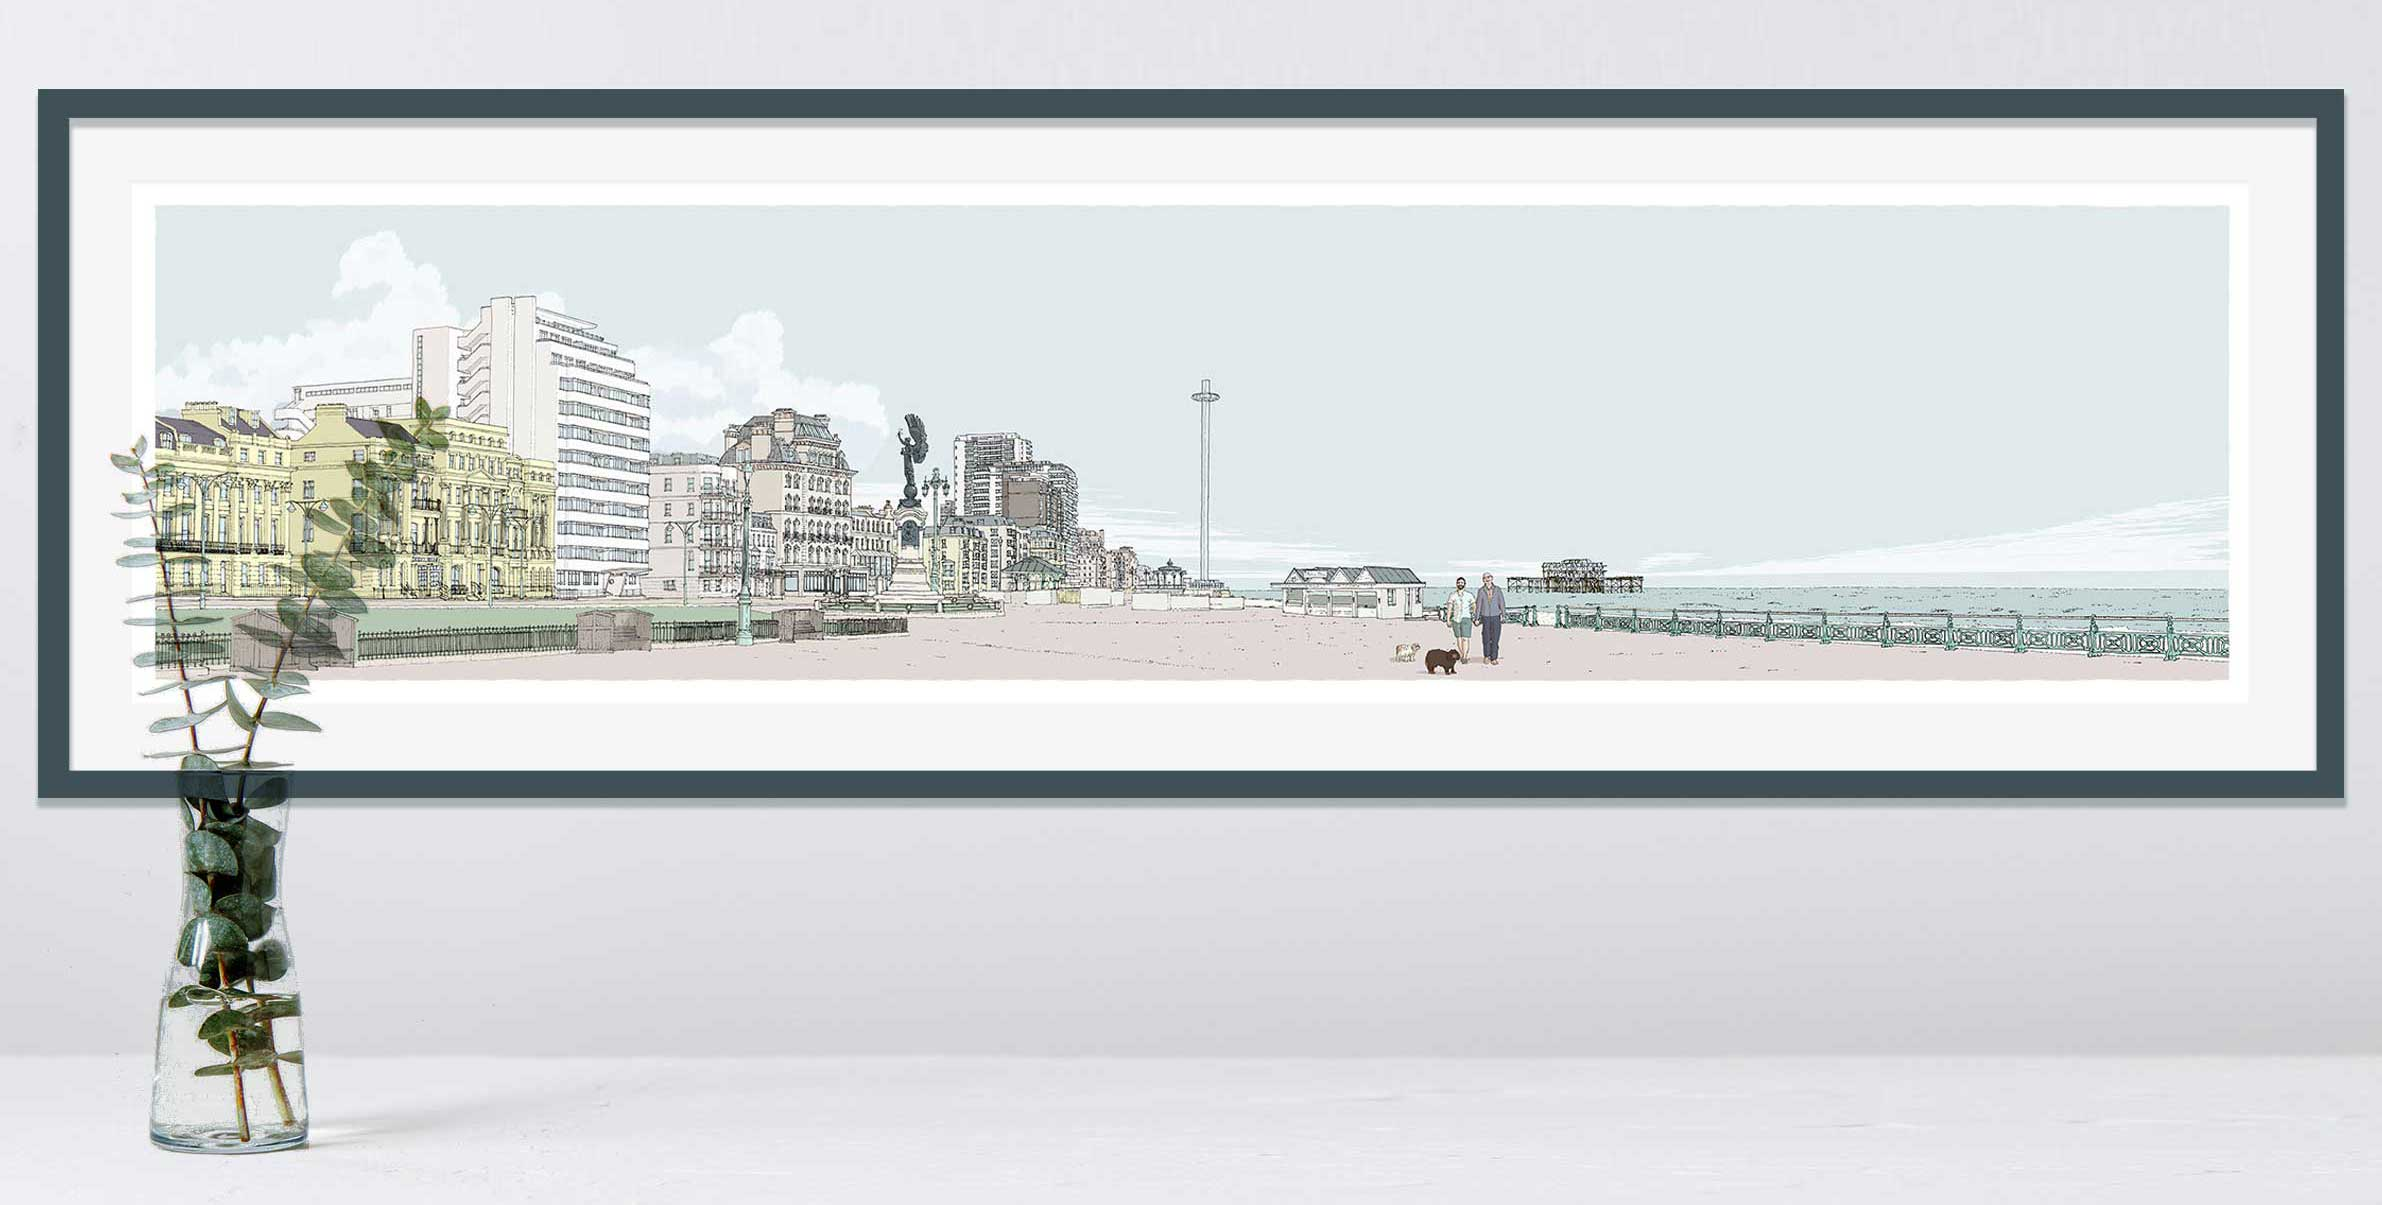 Portrait commission panorama in Hove Lawns